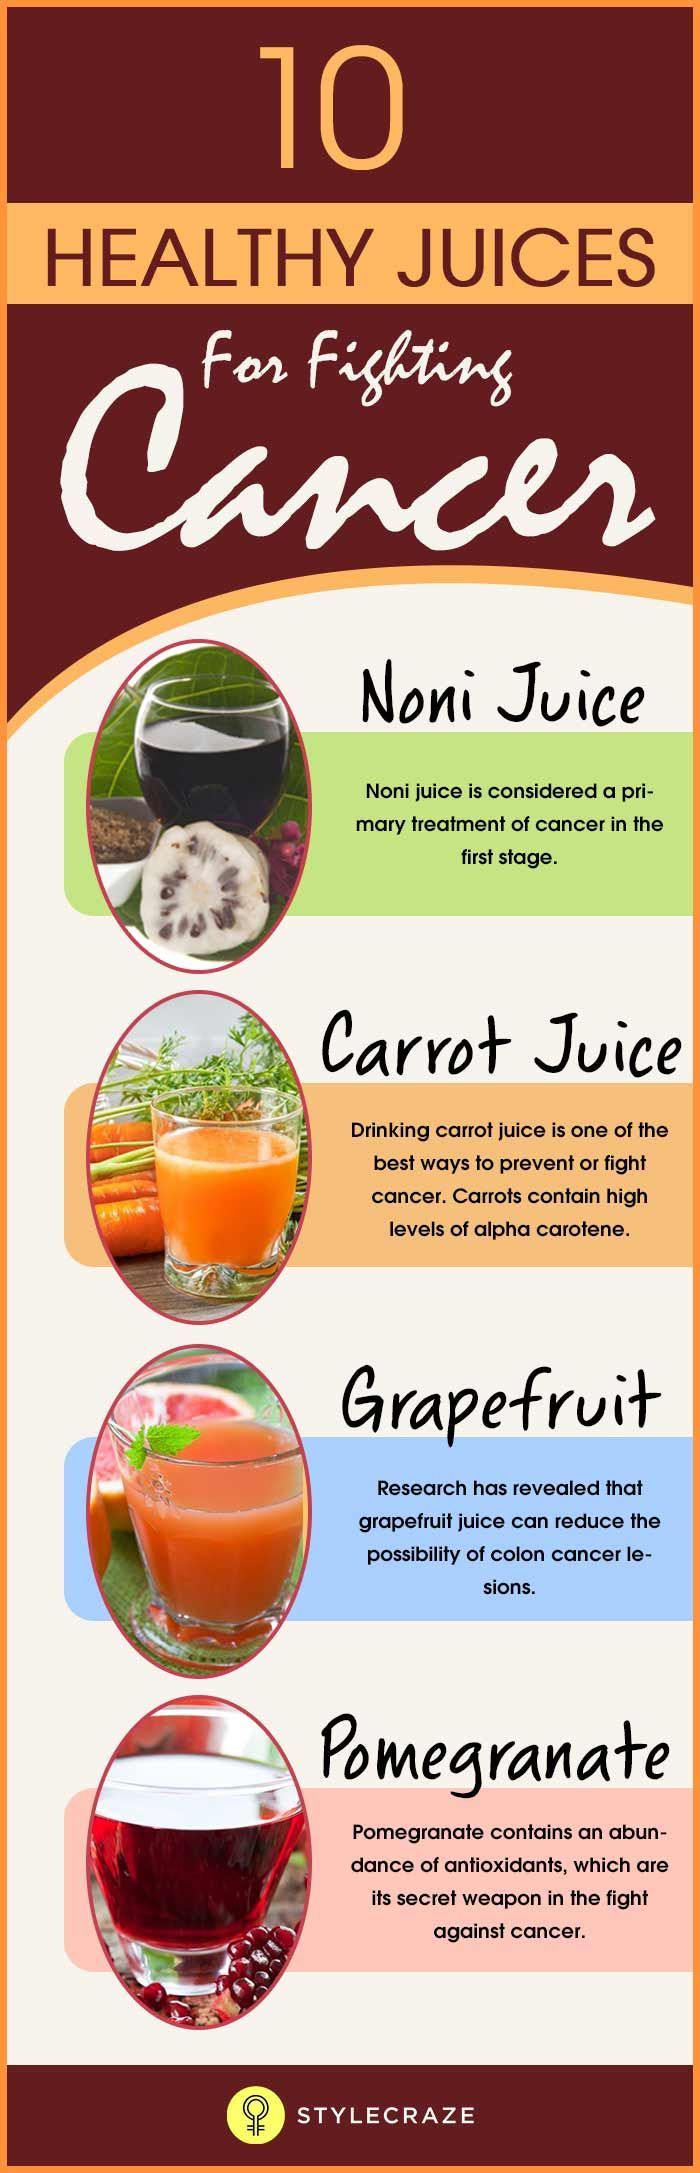 The word 'cancer' strikes terror in our hearts, doesn't it? Well, you can overcome your fears by following a healthy lifestyle and more importantly, a healthy diet. Read on to know how drinking fresh and organic fruit juices may help keep cancer at bay!